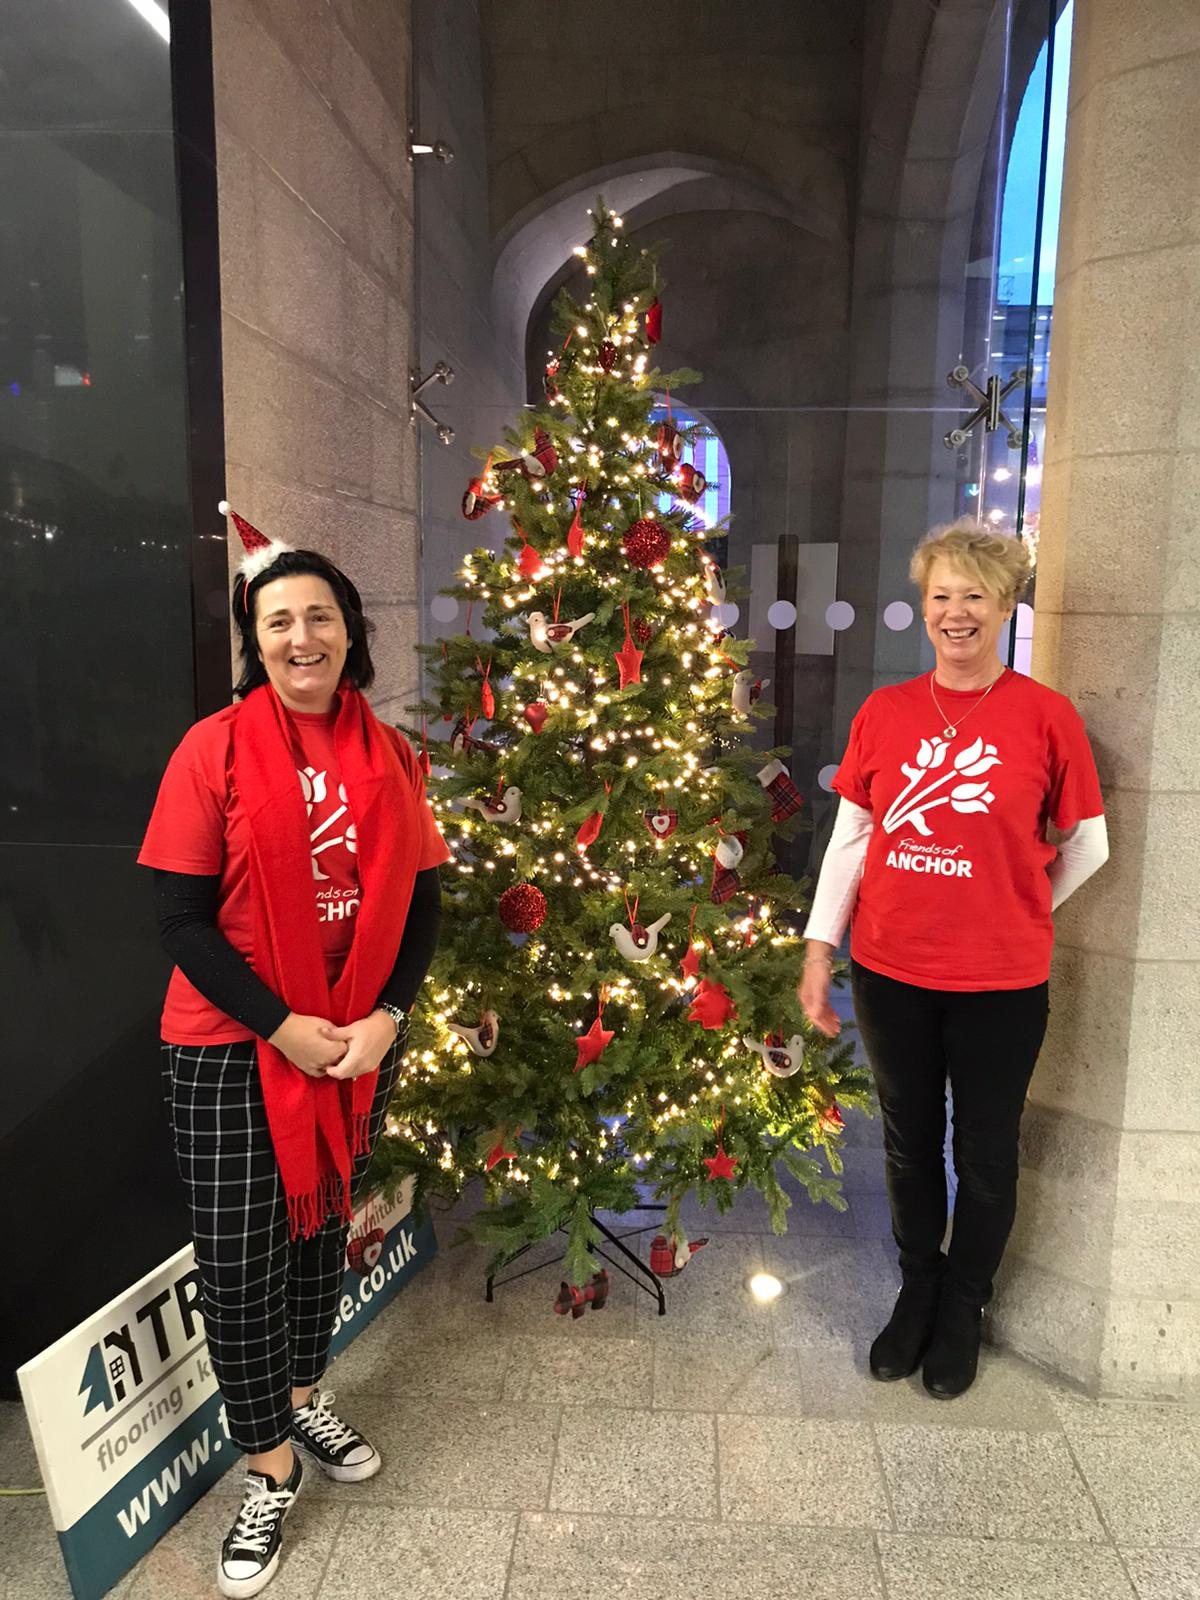 Friends of ANCHOR volunteers Donna Miller (left) and Lesley Stewart with the Tribute Tree